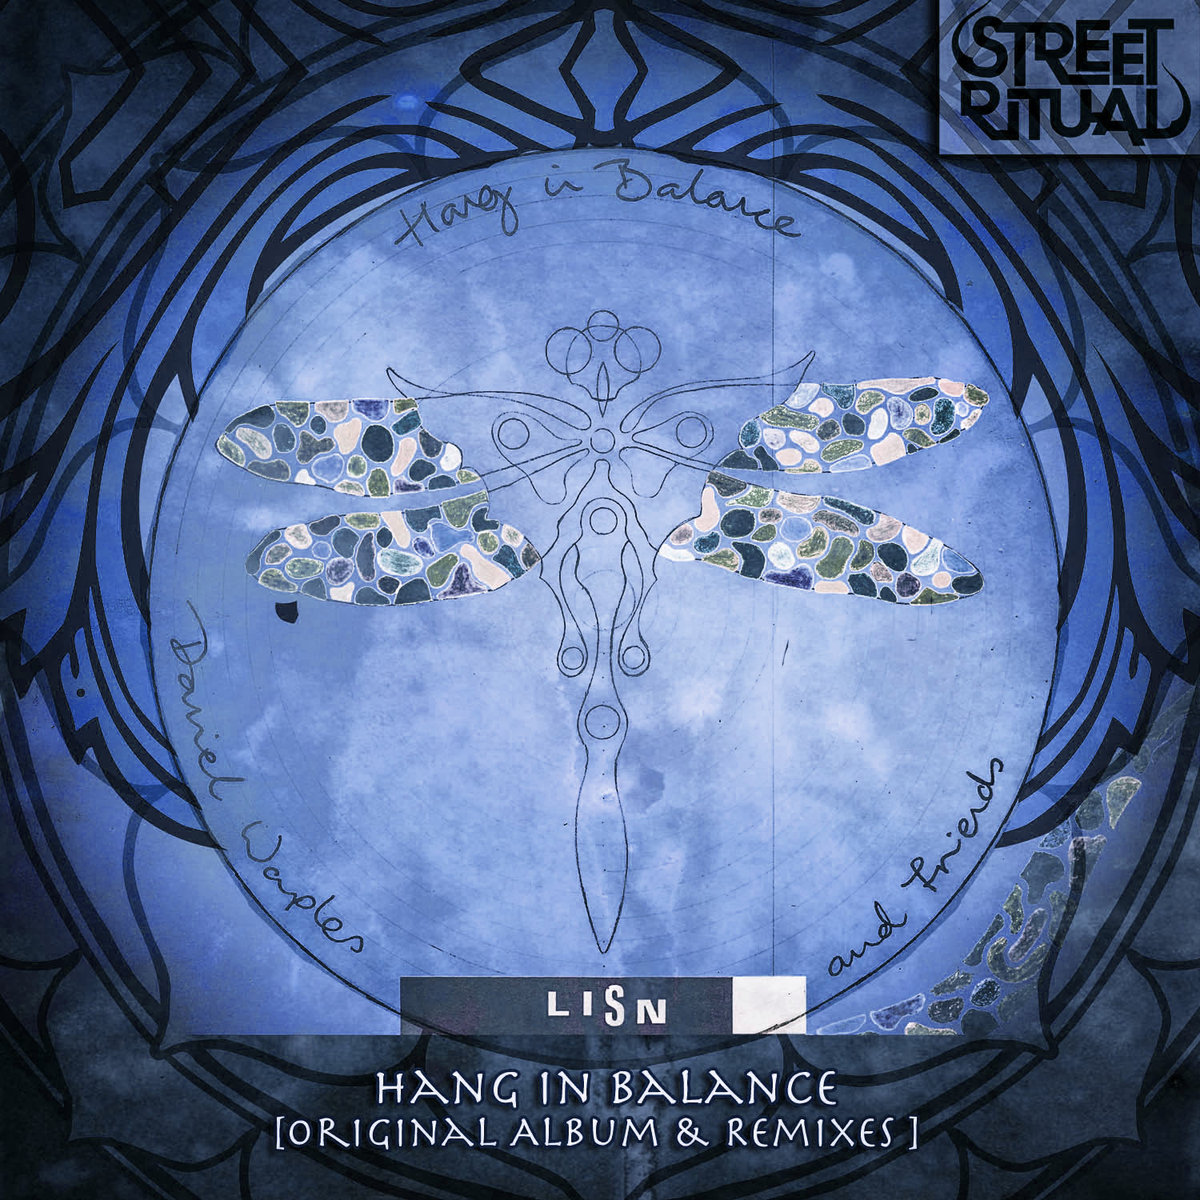 Hang in Balance - Lago @ 'Lisn (Remixes & Originals)' album (bass, daniel waples)